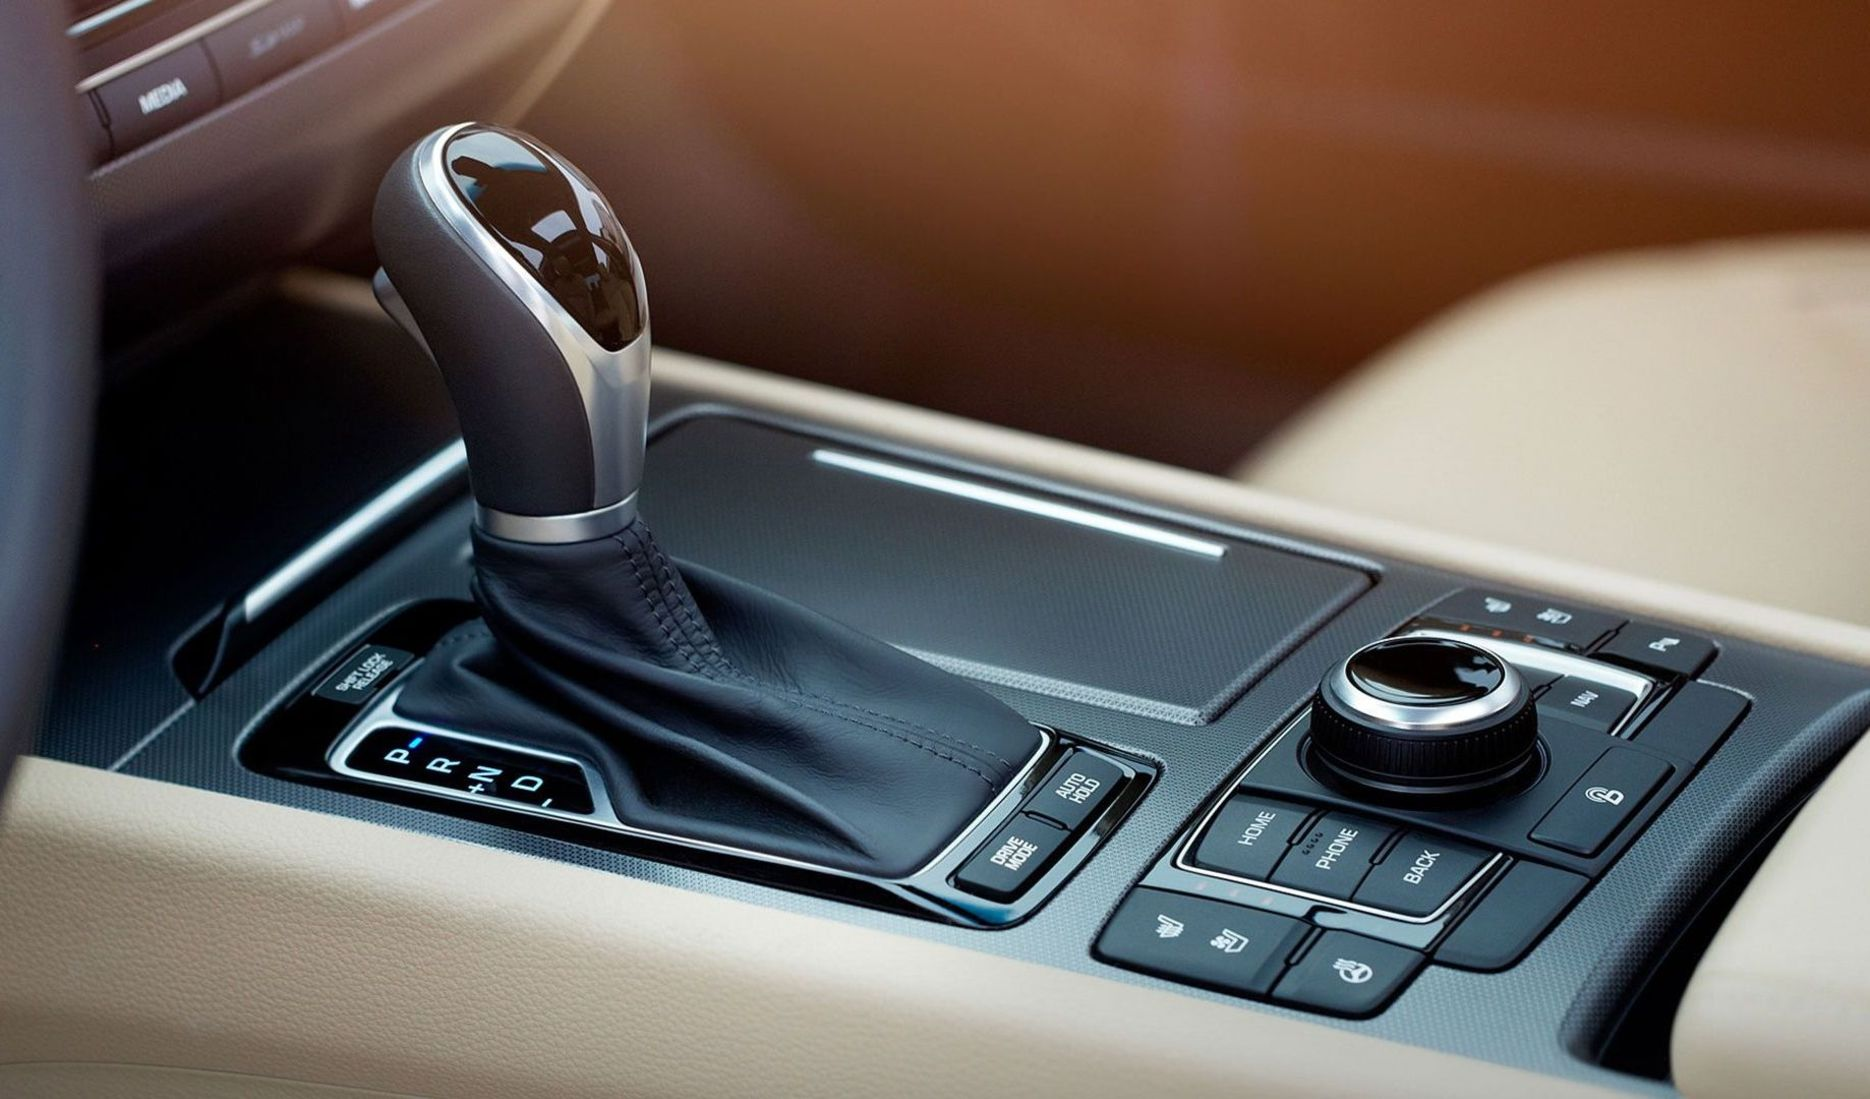 The G80 Intuitive 8-speed Automatic Transmission